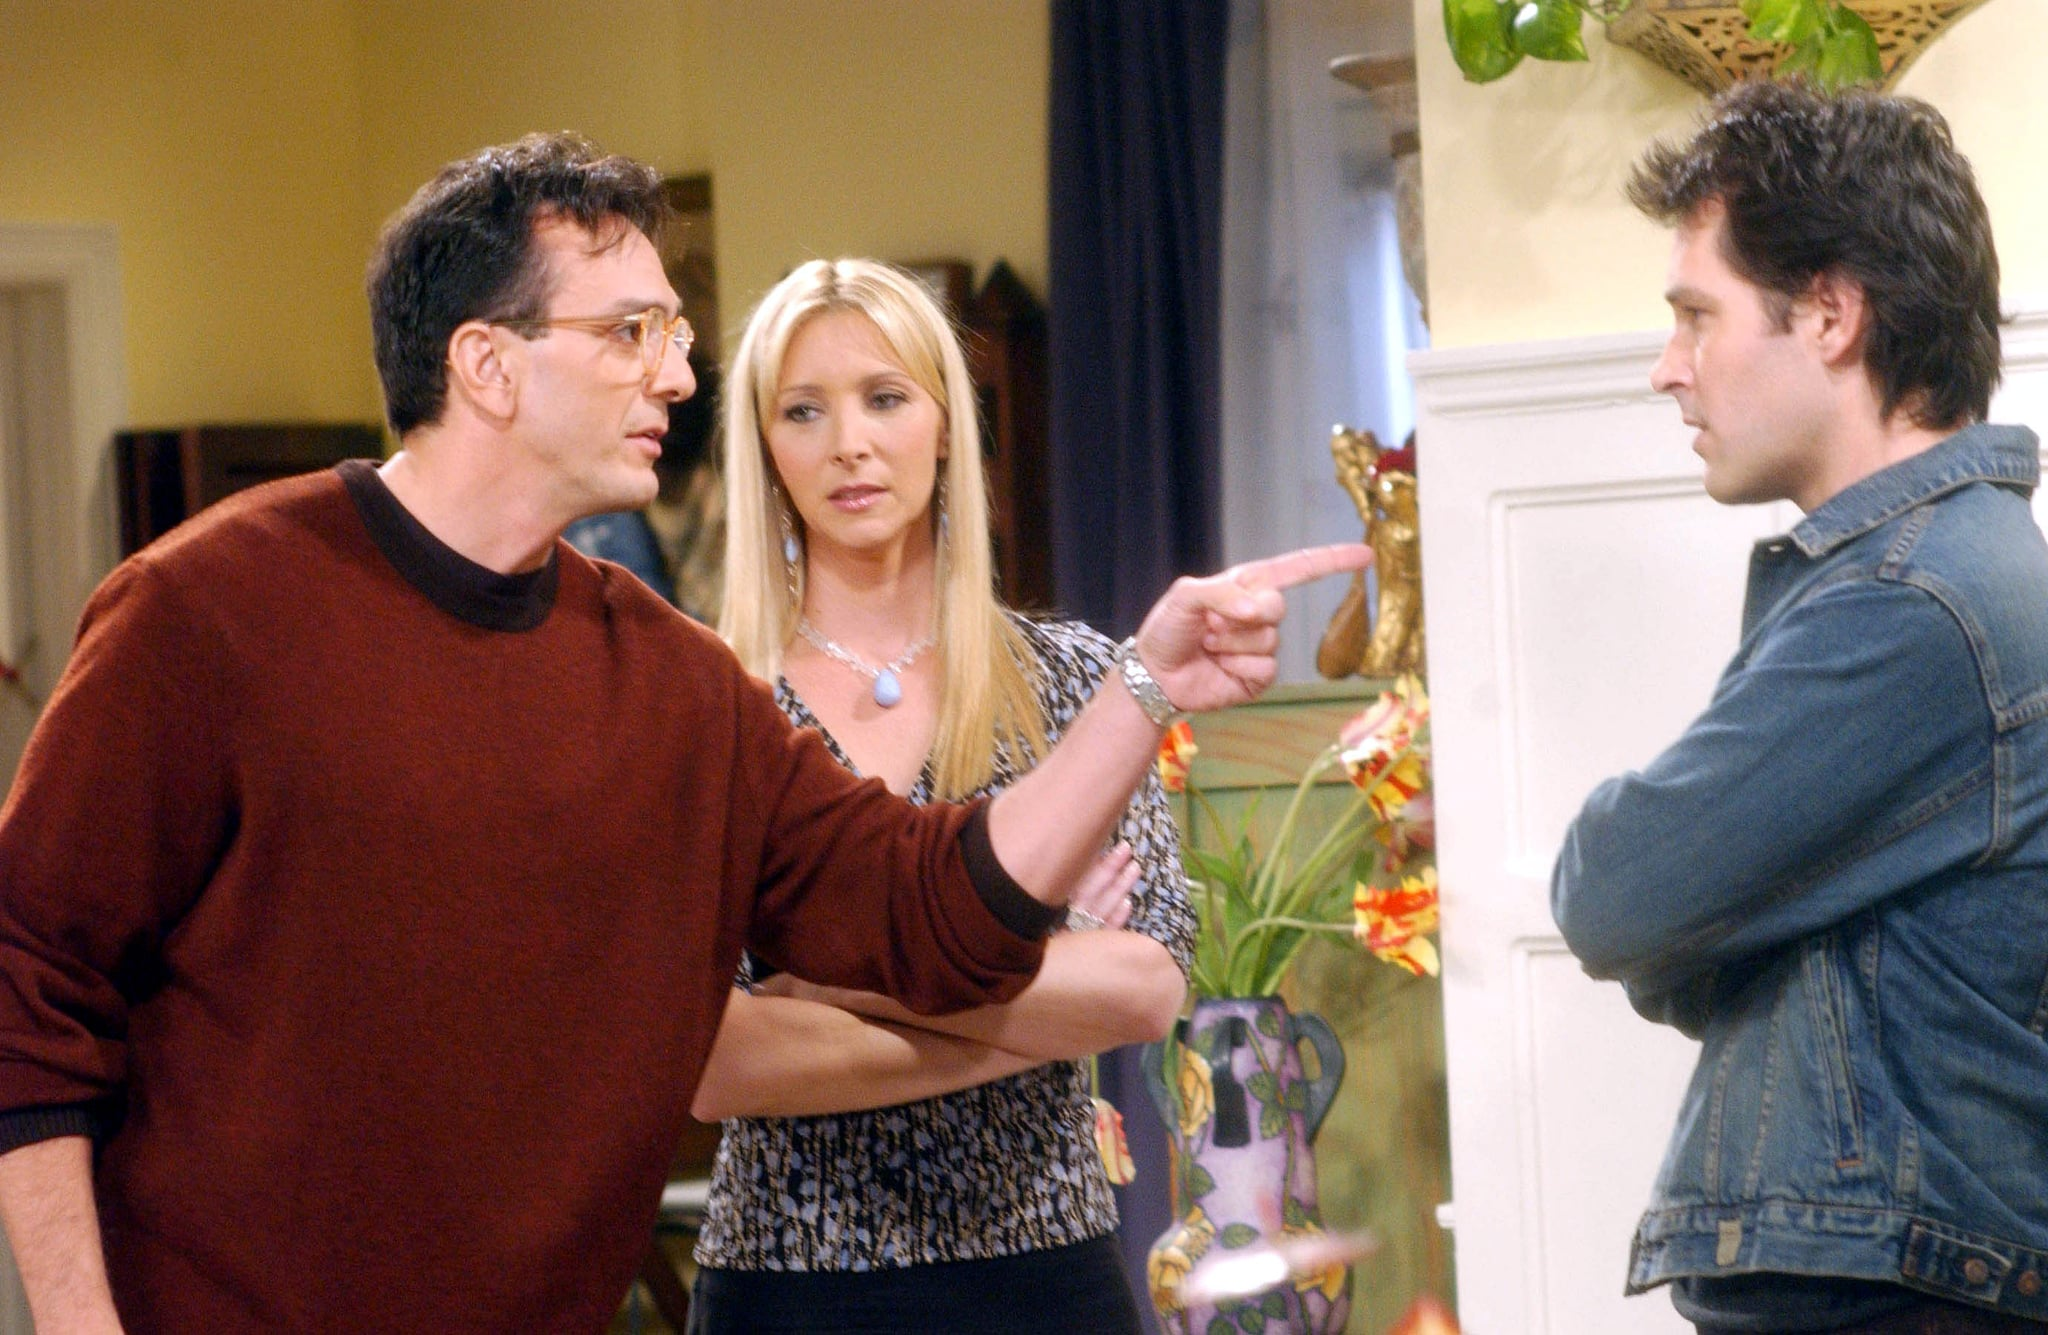 FRIENDS, Hank Azaria, Lisa Kudrow, Paul Rudd, 'The One With The Male Nanny (200th episode)' (Season 9, epis. #906), 1994-2004,  Warner Bros. / Courtesy: Everett Collection